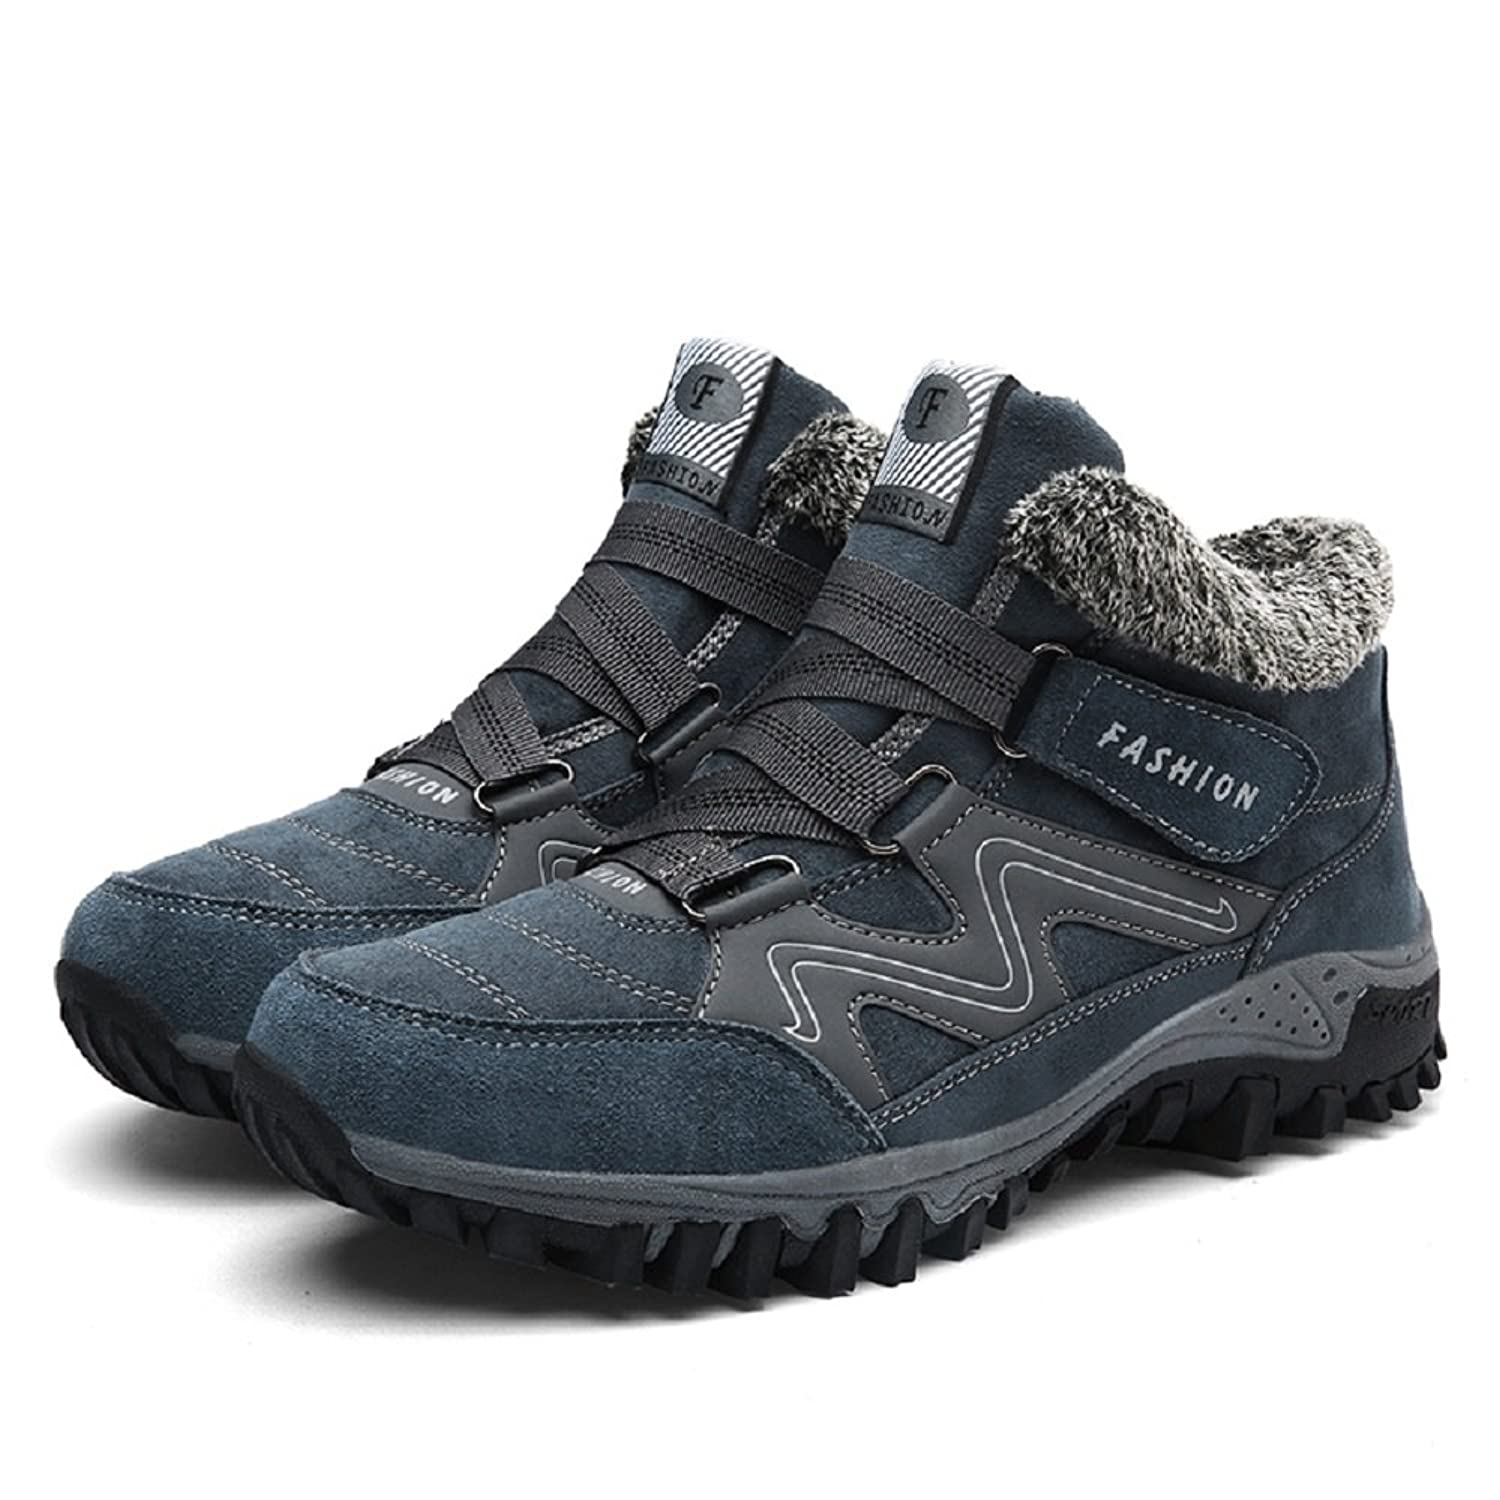 Men's Hiking Footwear Cotton-Padded Suede Shoes For Outdoor Trekking